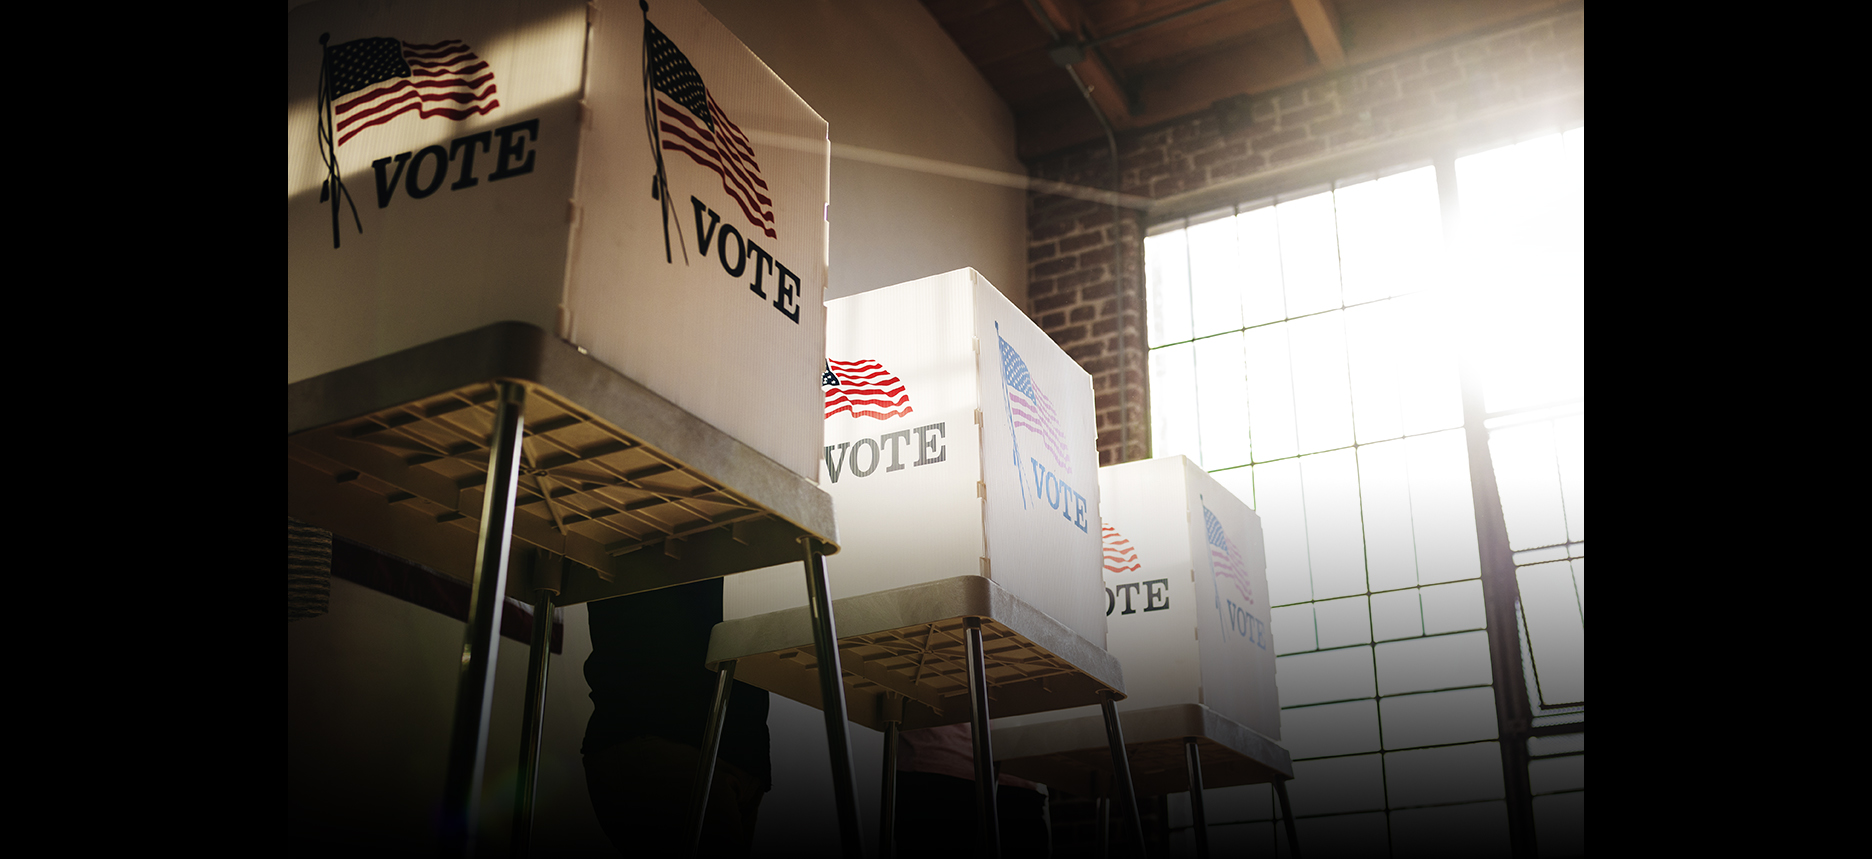 Voting: The Adult Thing to Do